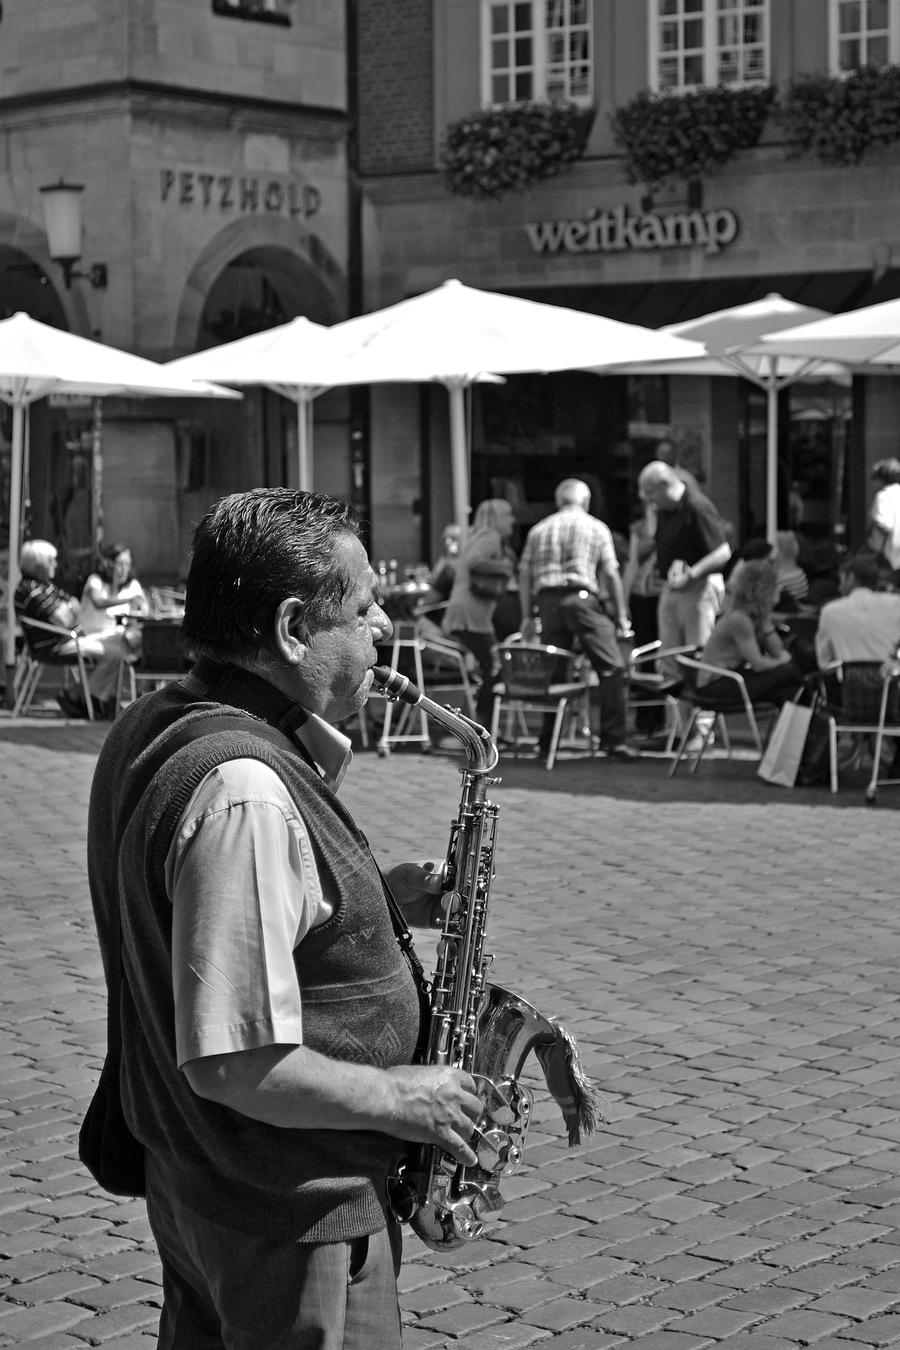 Saxo / Photography by Chris4020 / Uploaded 6th September 2014 @ 09:37 PM